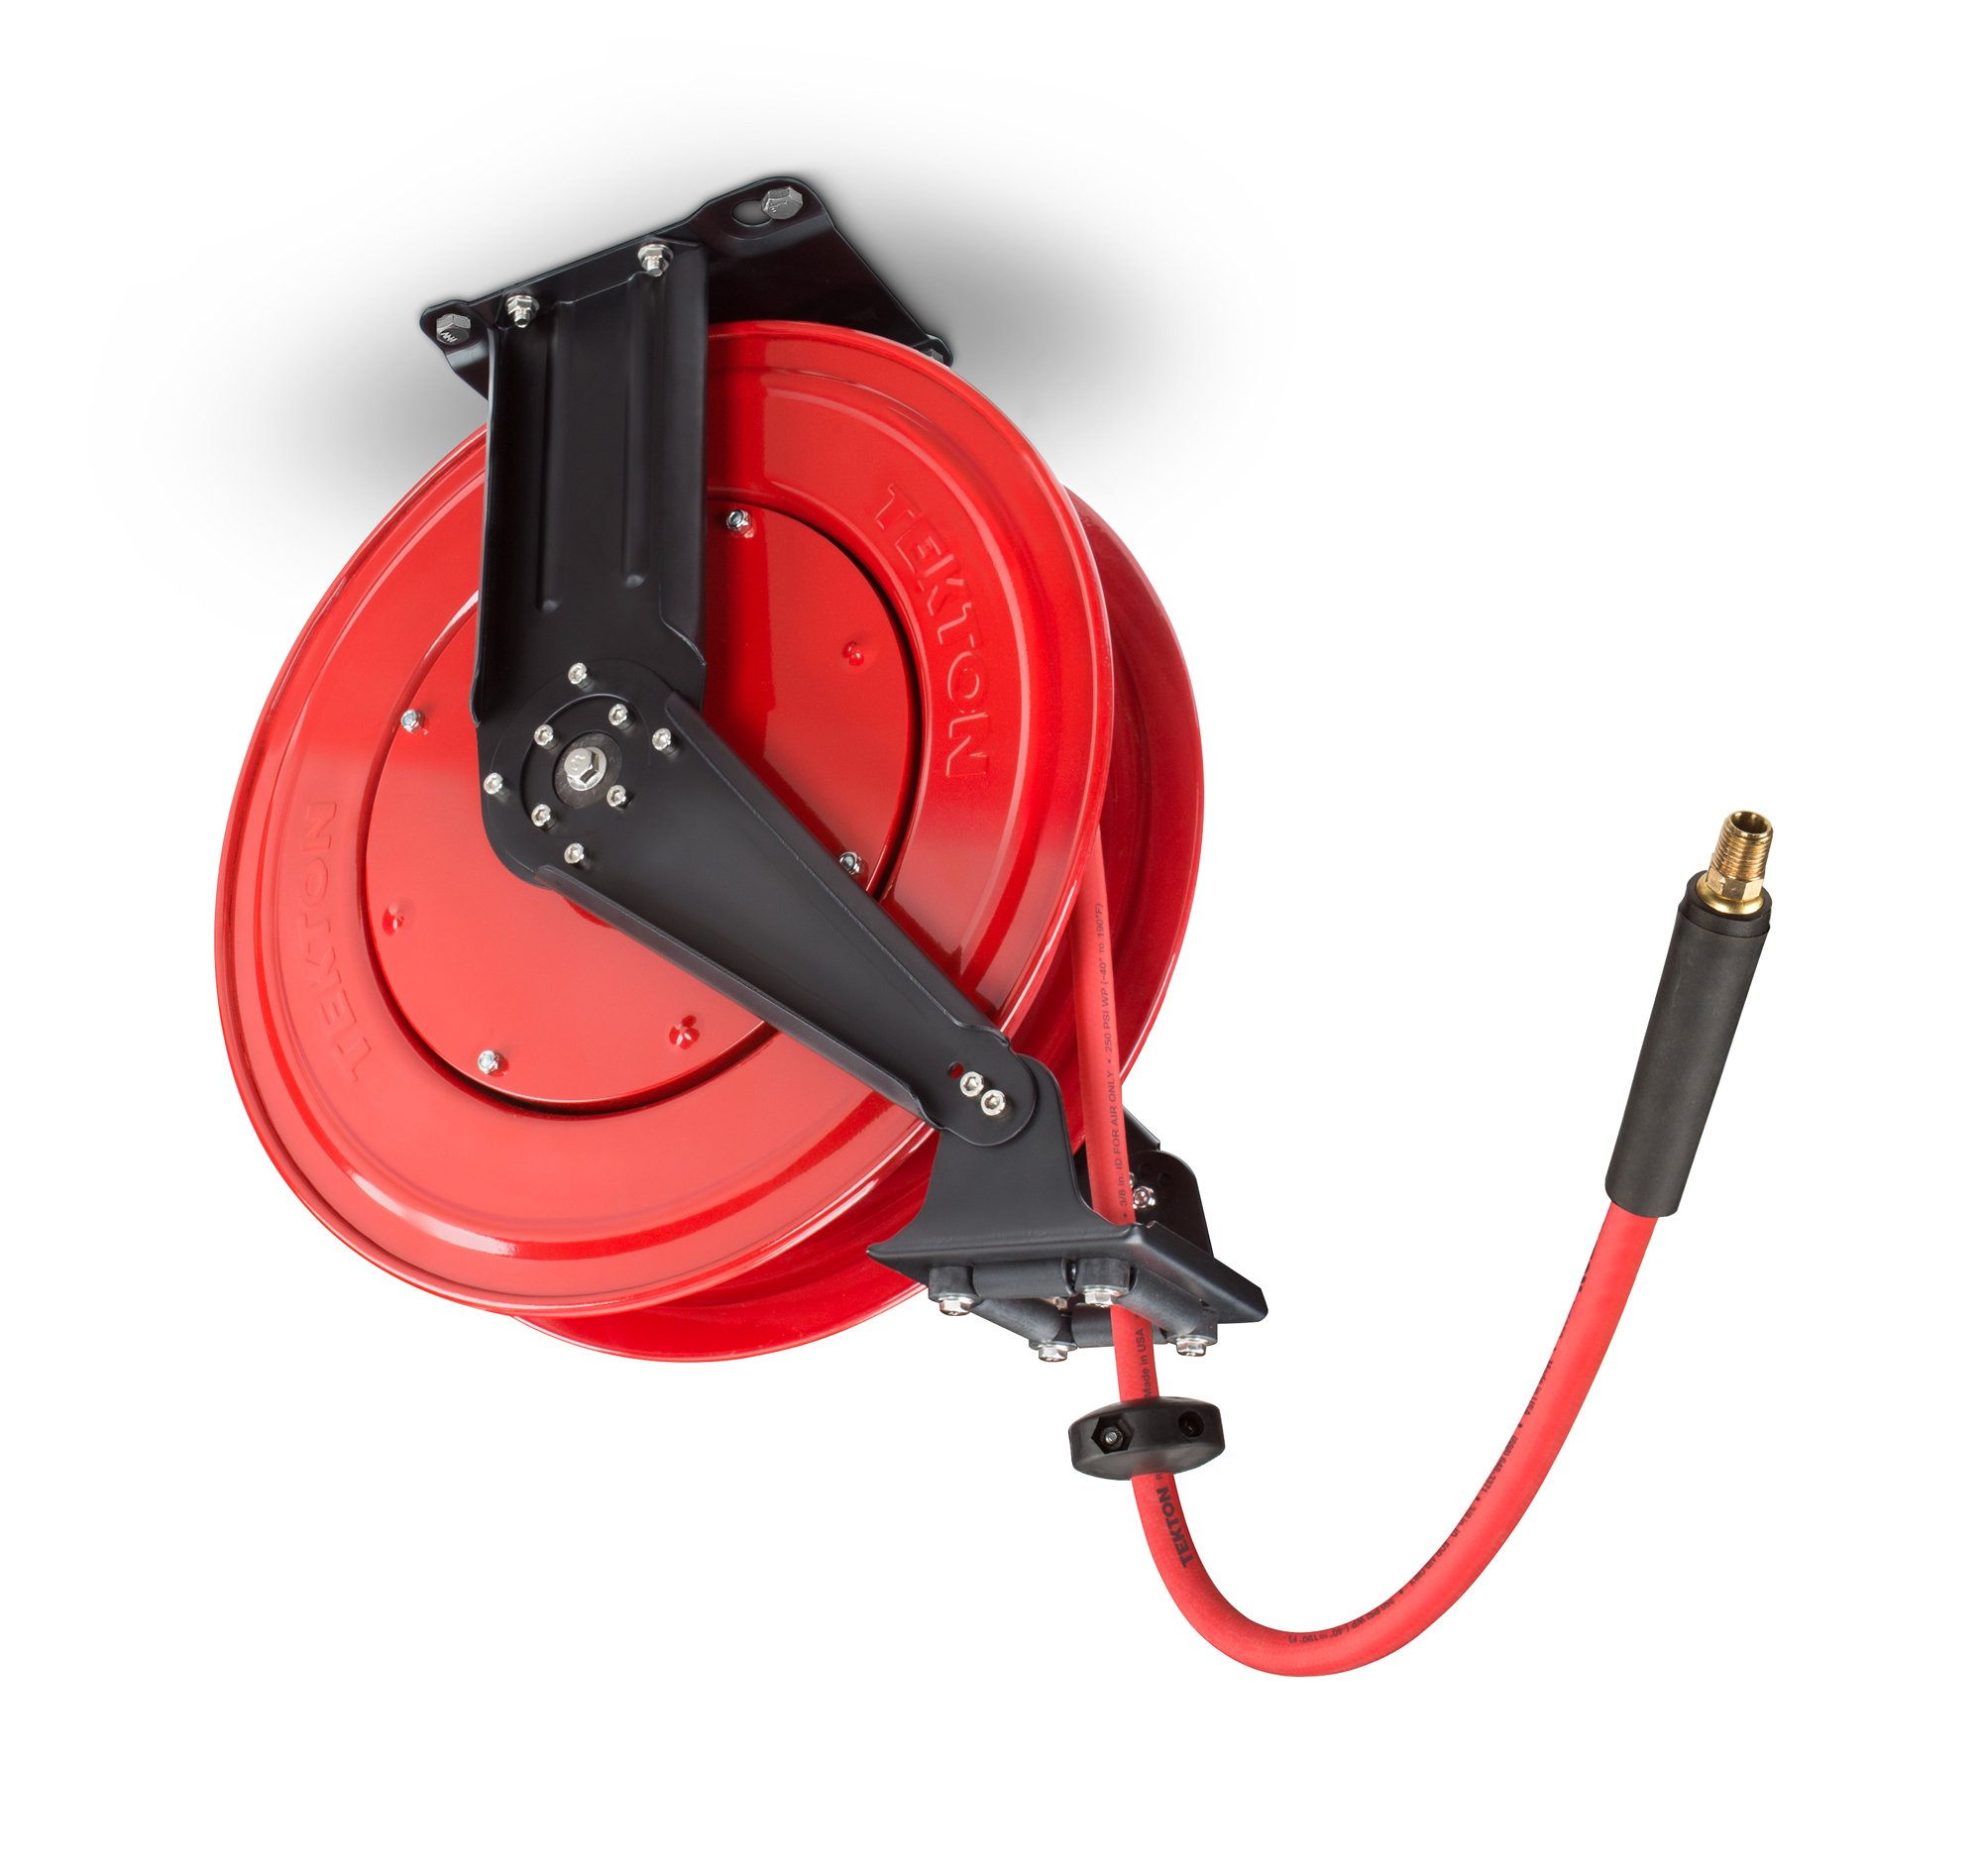 TEKTON 50-Foot by 3/8-Inch I.D. Dual Arm Auto Rewind Air Hose Reel (250 PSI) | 46875